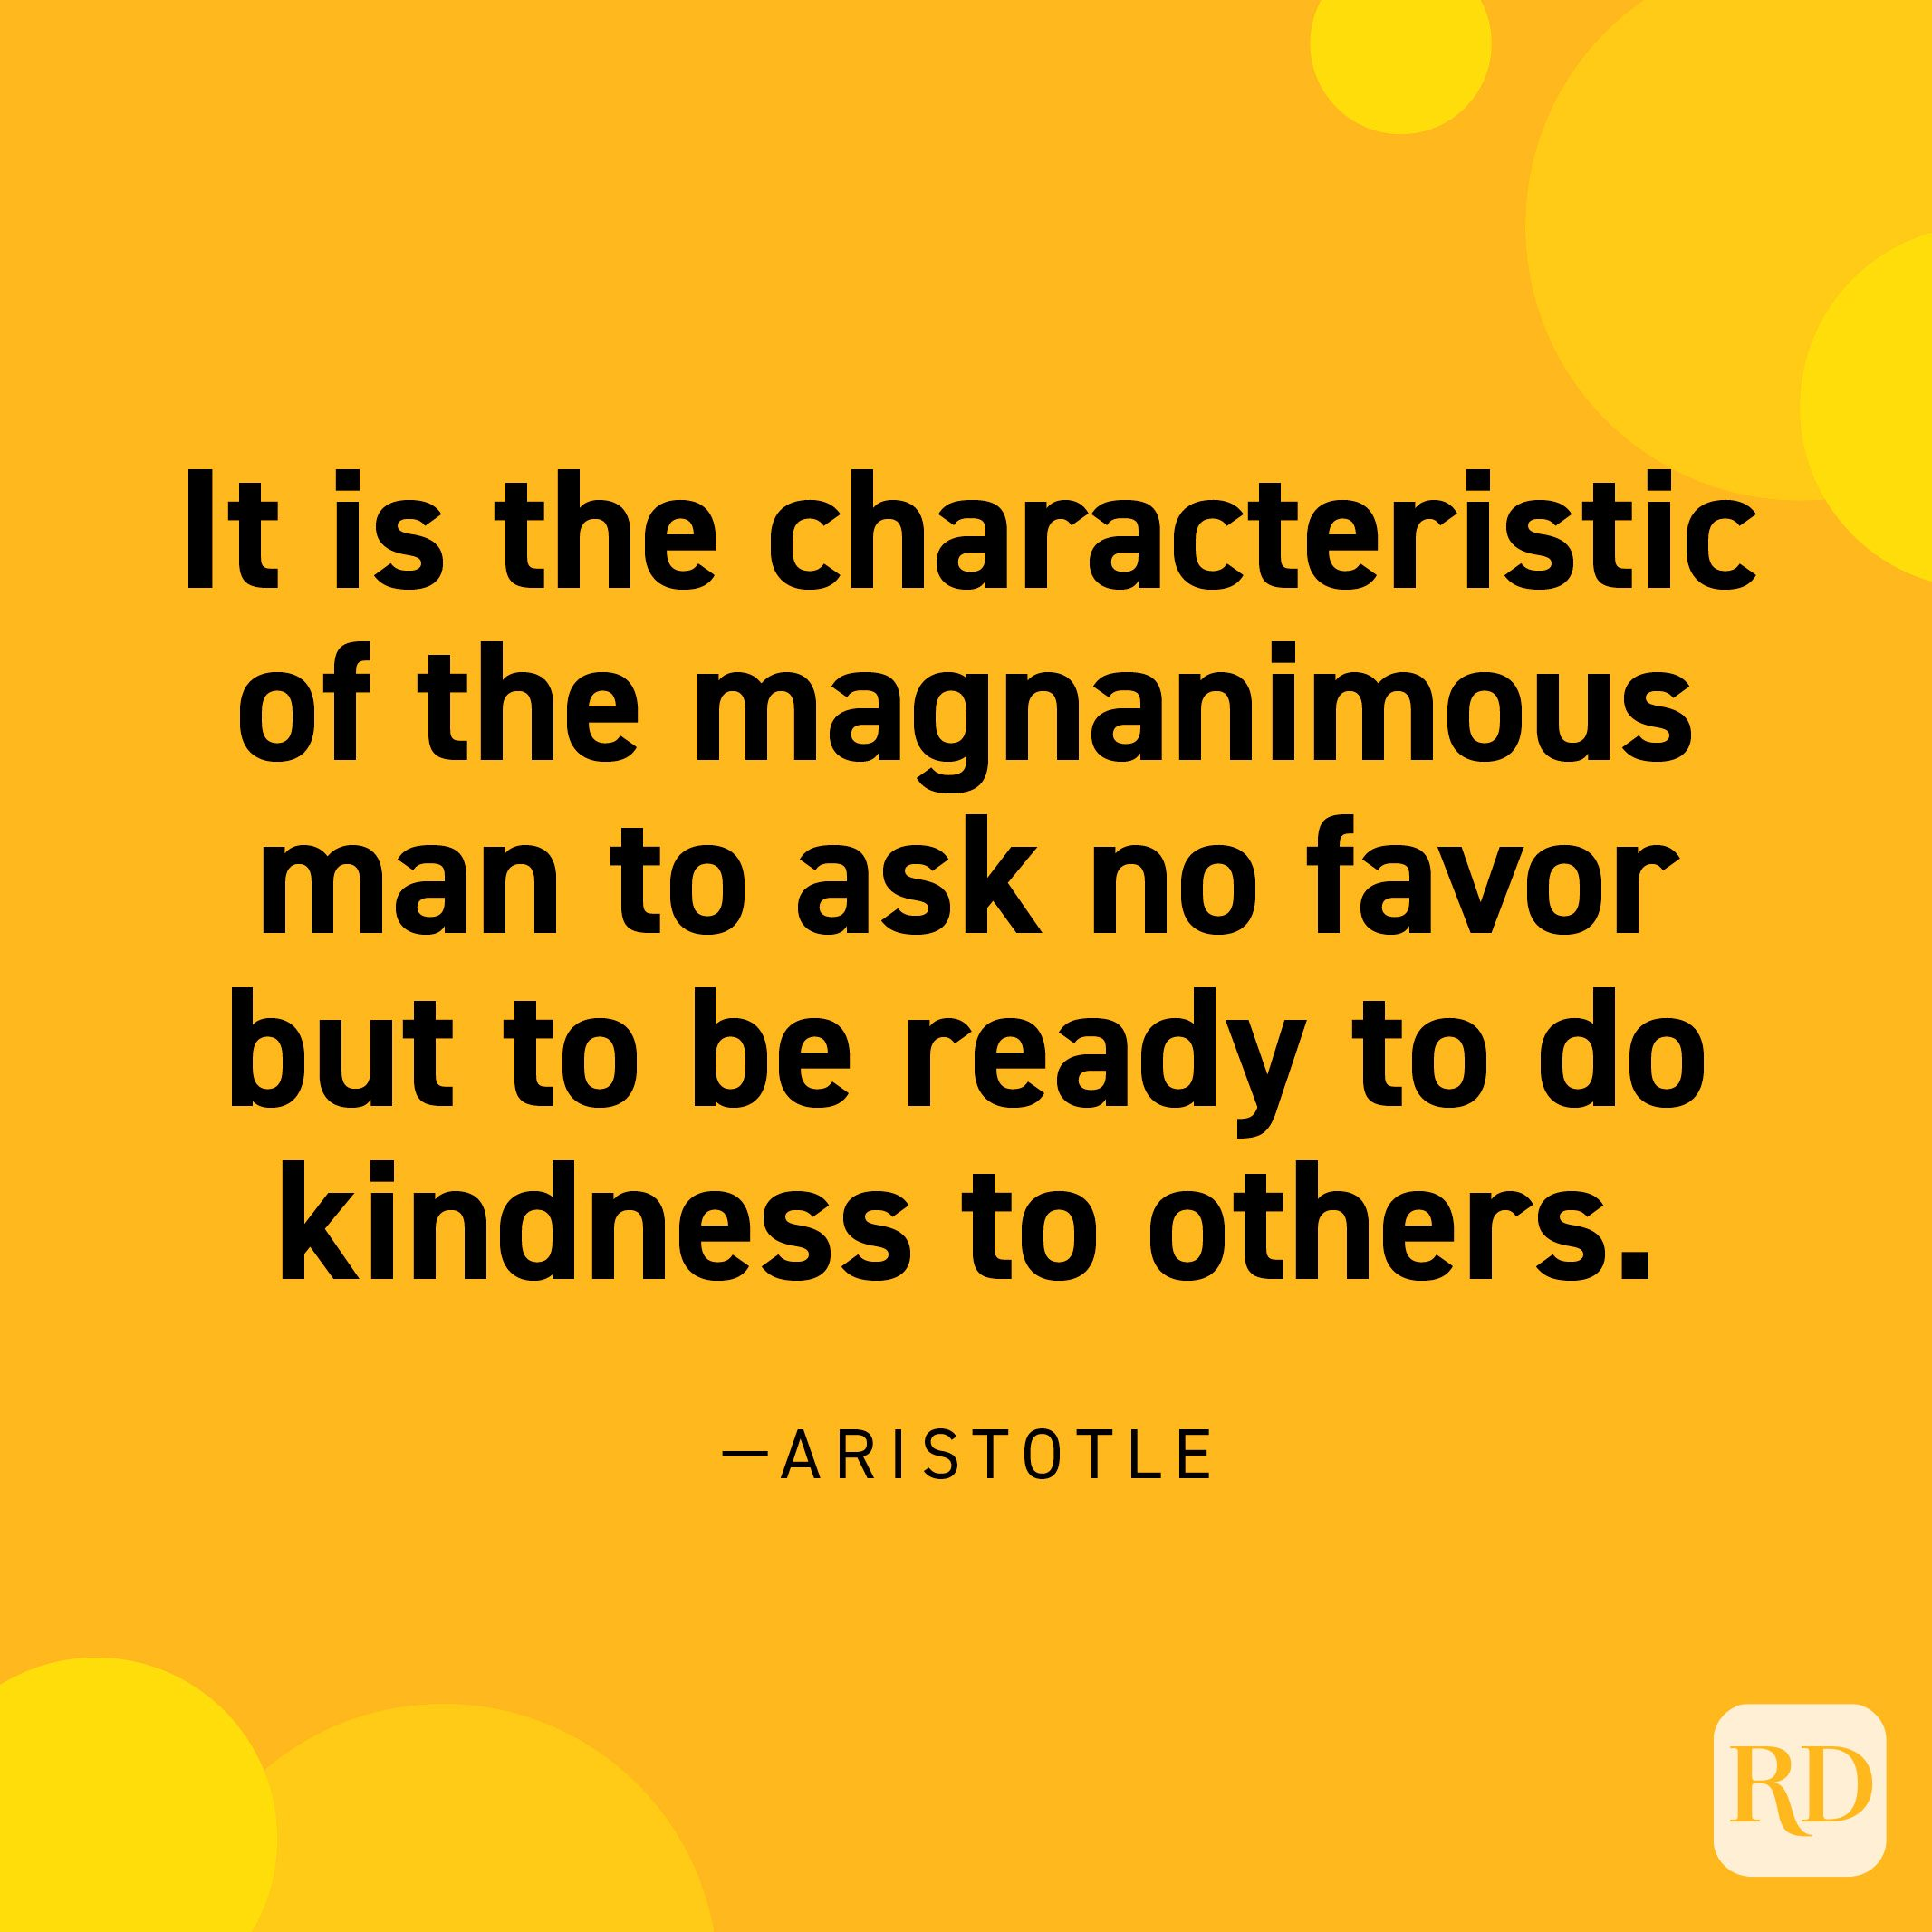 """""""It is the characteristic of the magnanimous man to ask no favor but to be ready to do kindness to others."""" —Aristotle."""